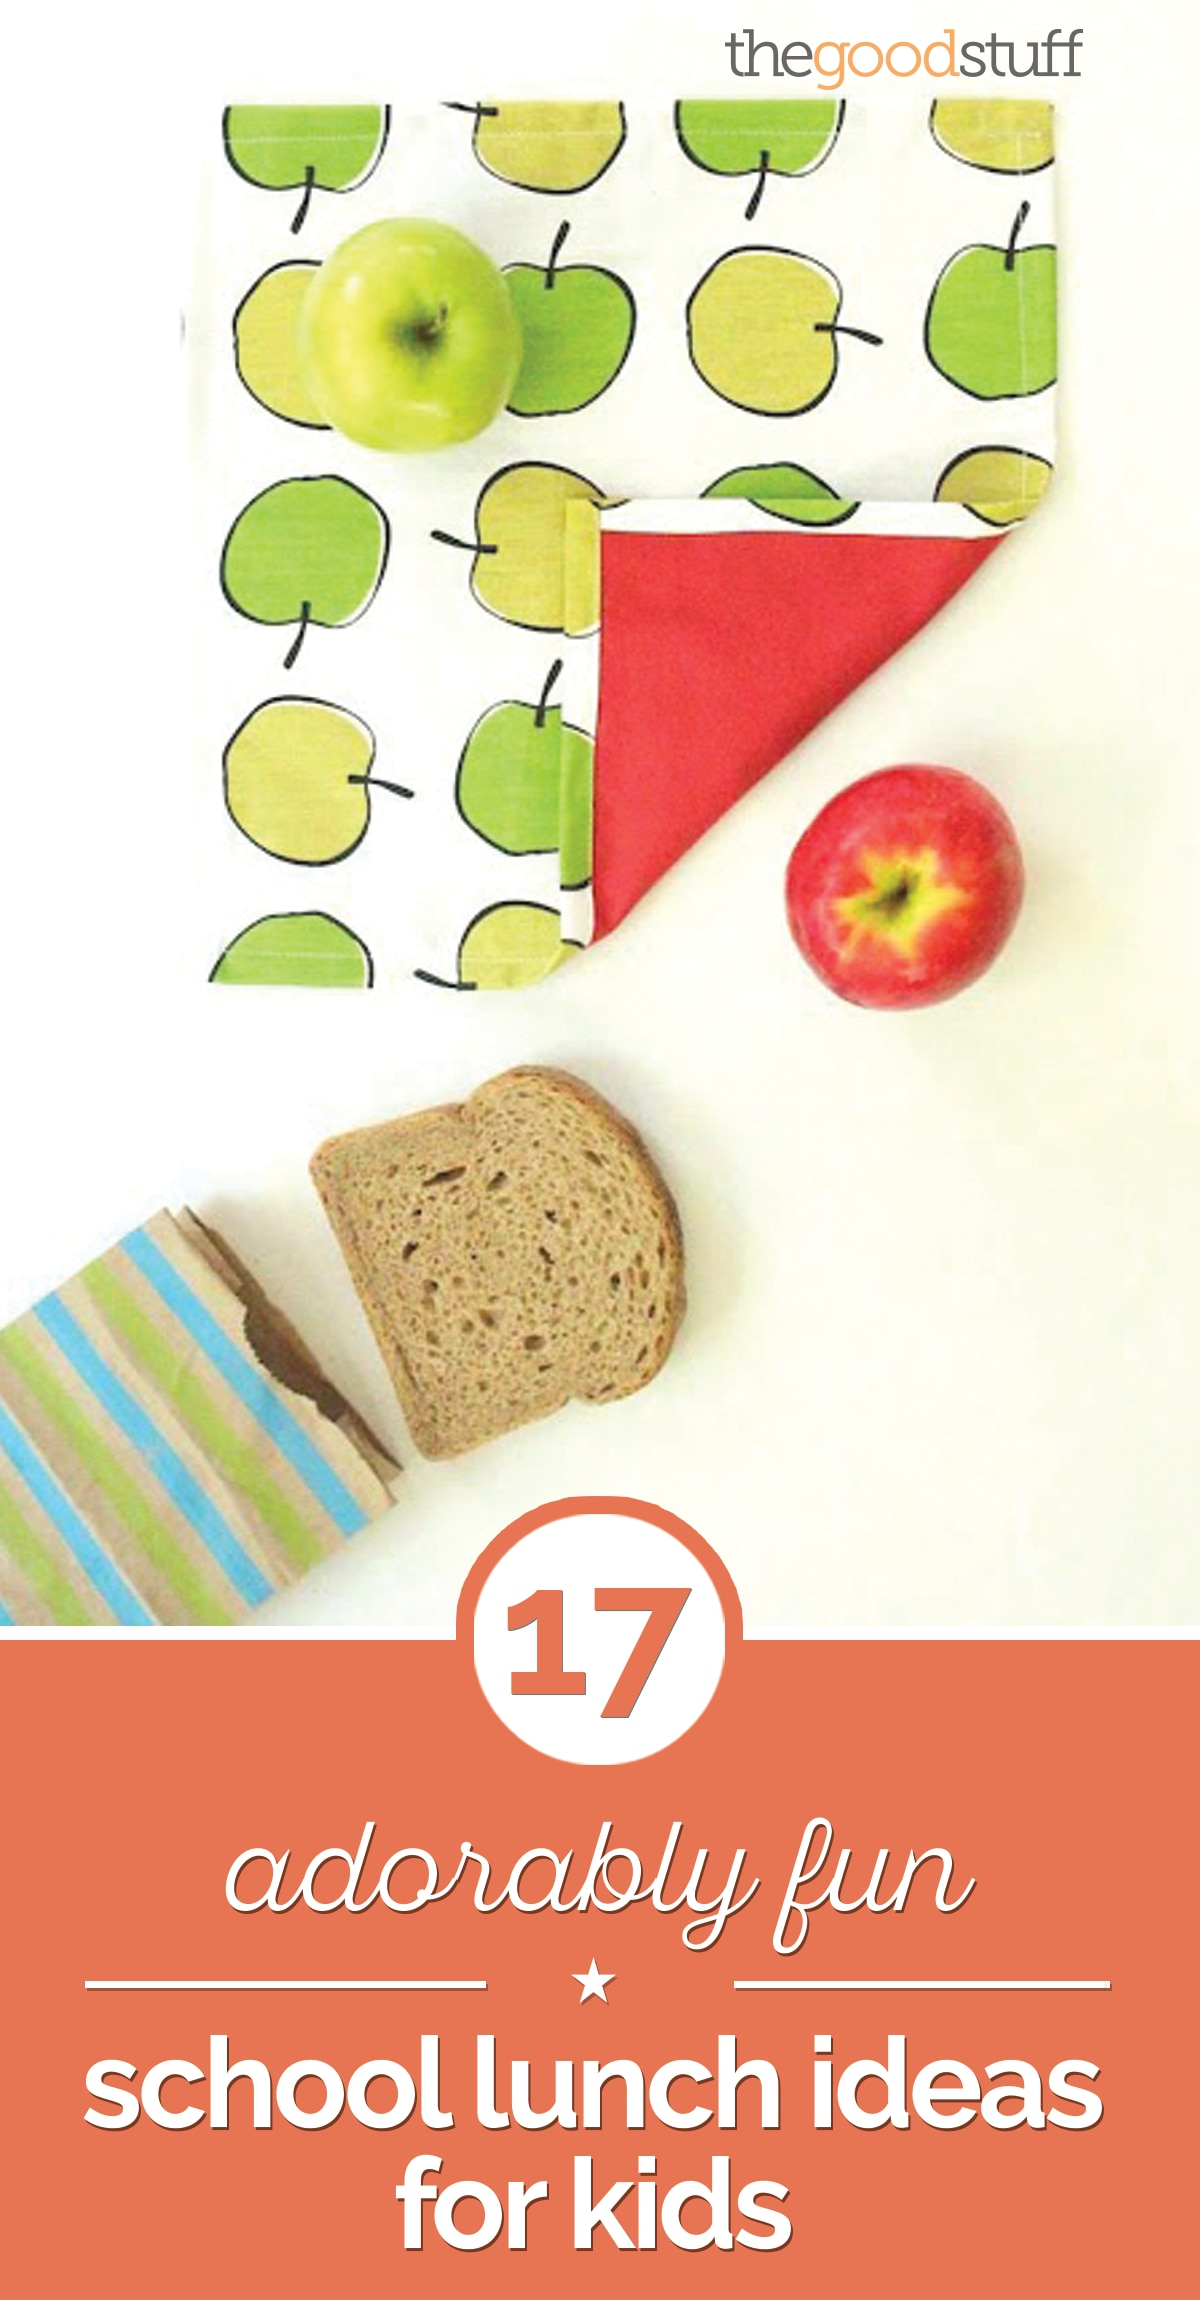 17 Adorably Fun School Lunch Ideas for Kids | thegoodstuff